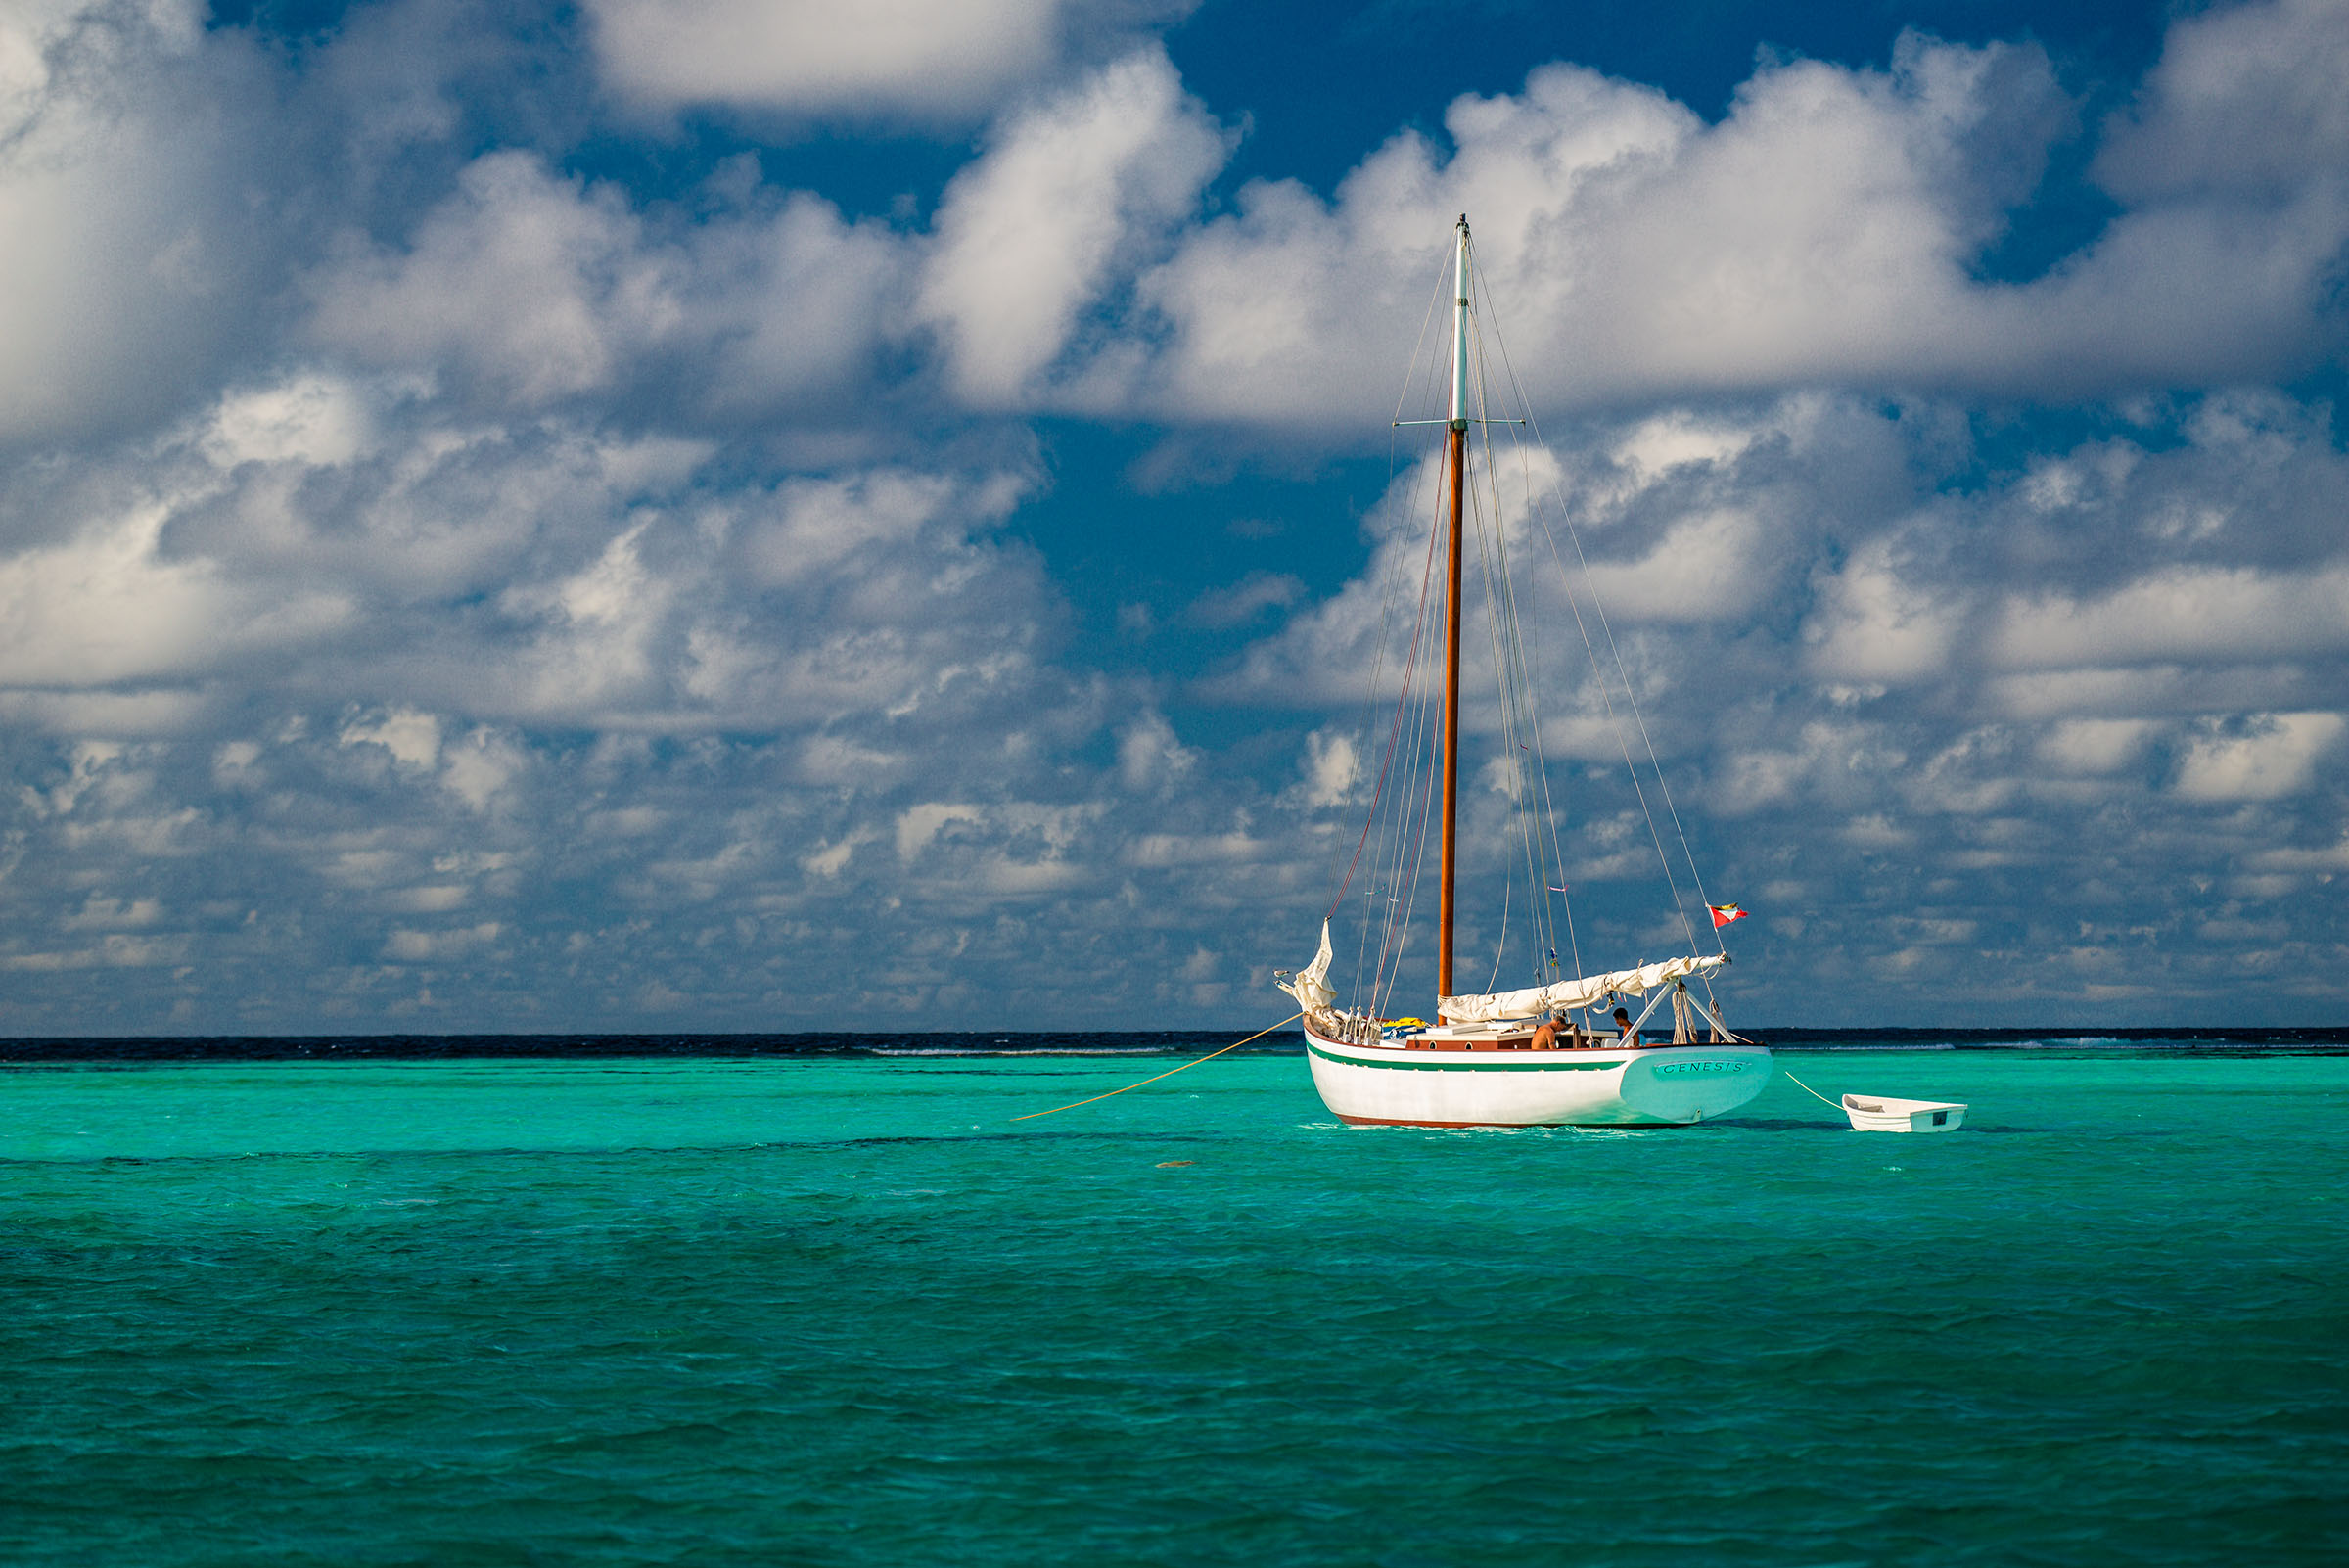 Sailboat at anchor in the caribbean